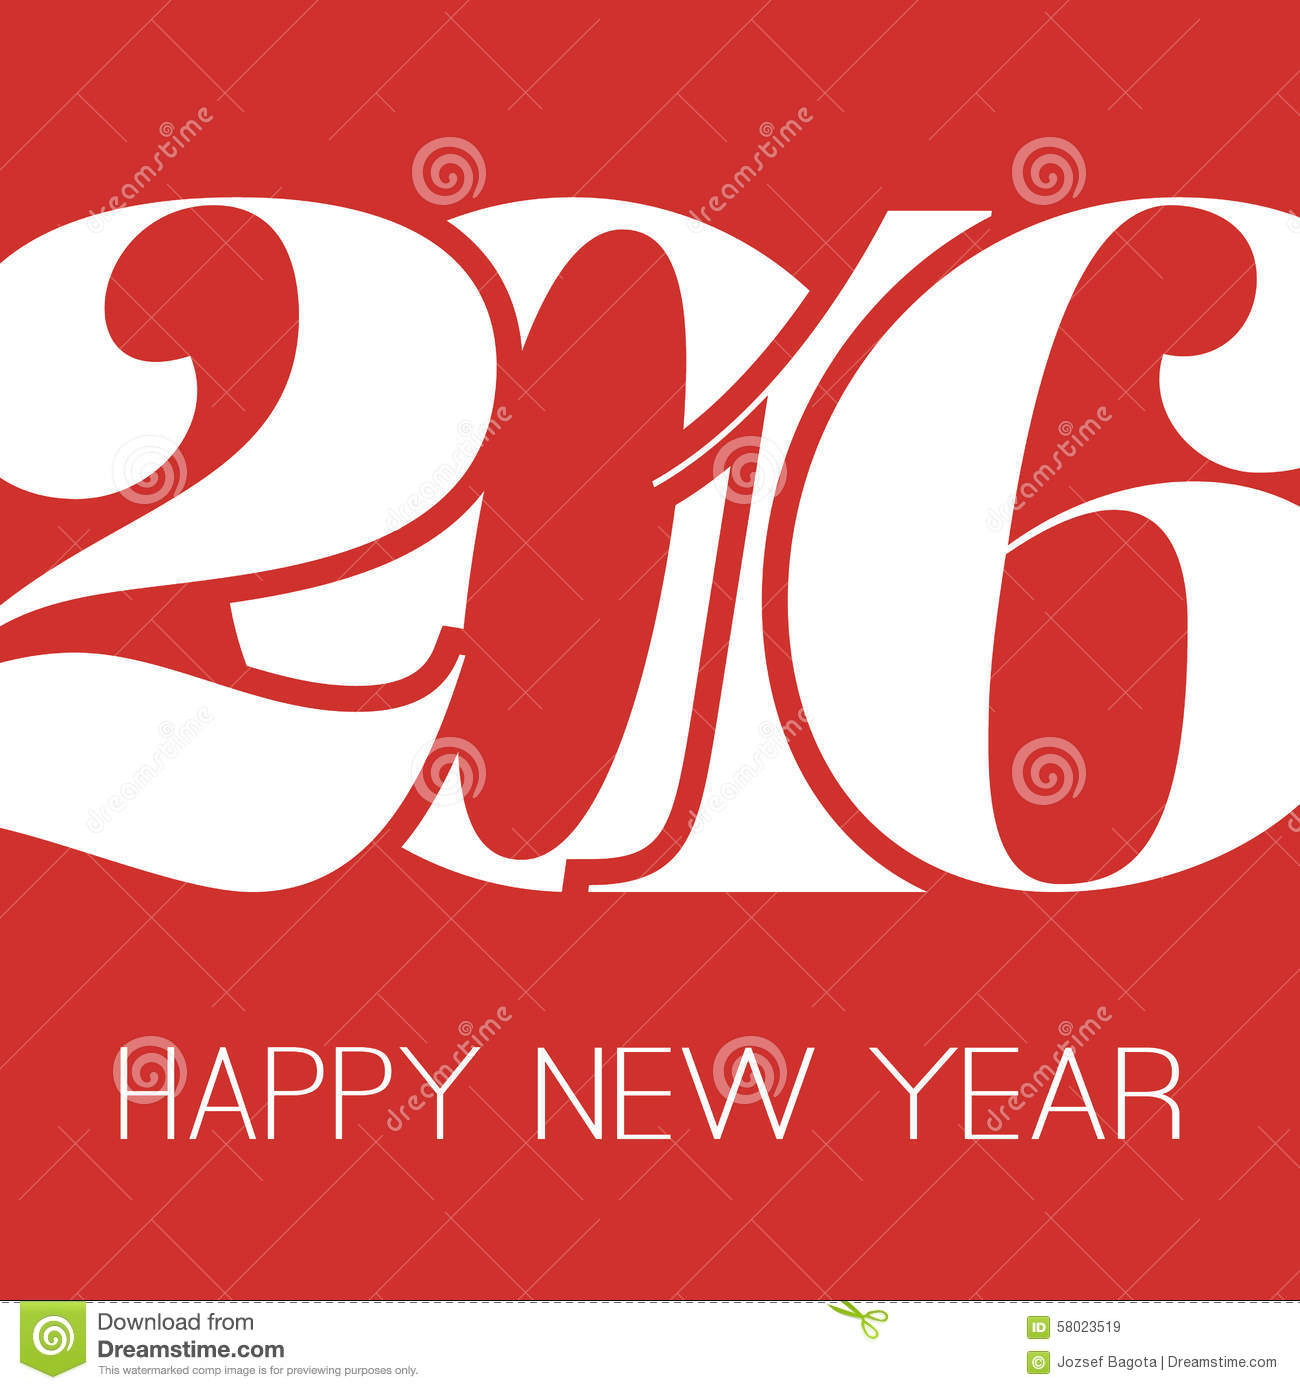 Happy New Year Greeting Card Creative Design Template 2016 Stock